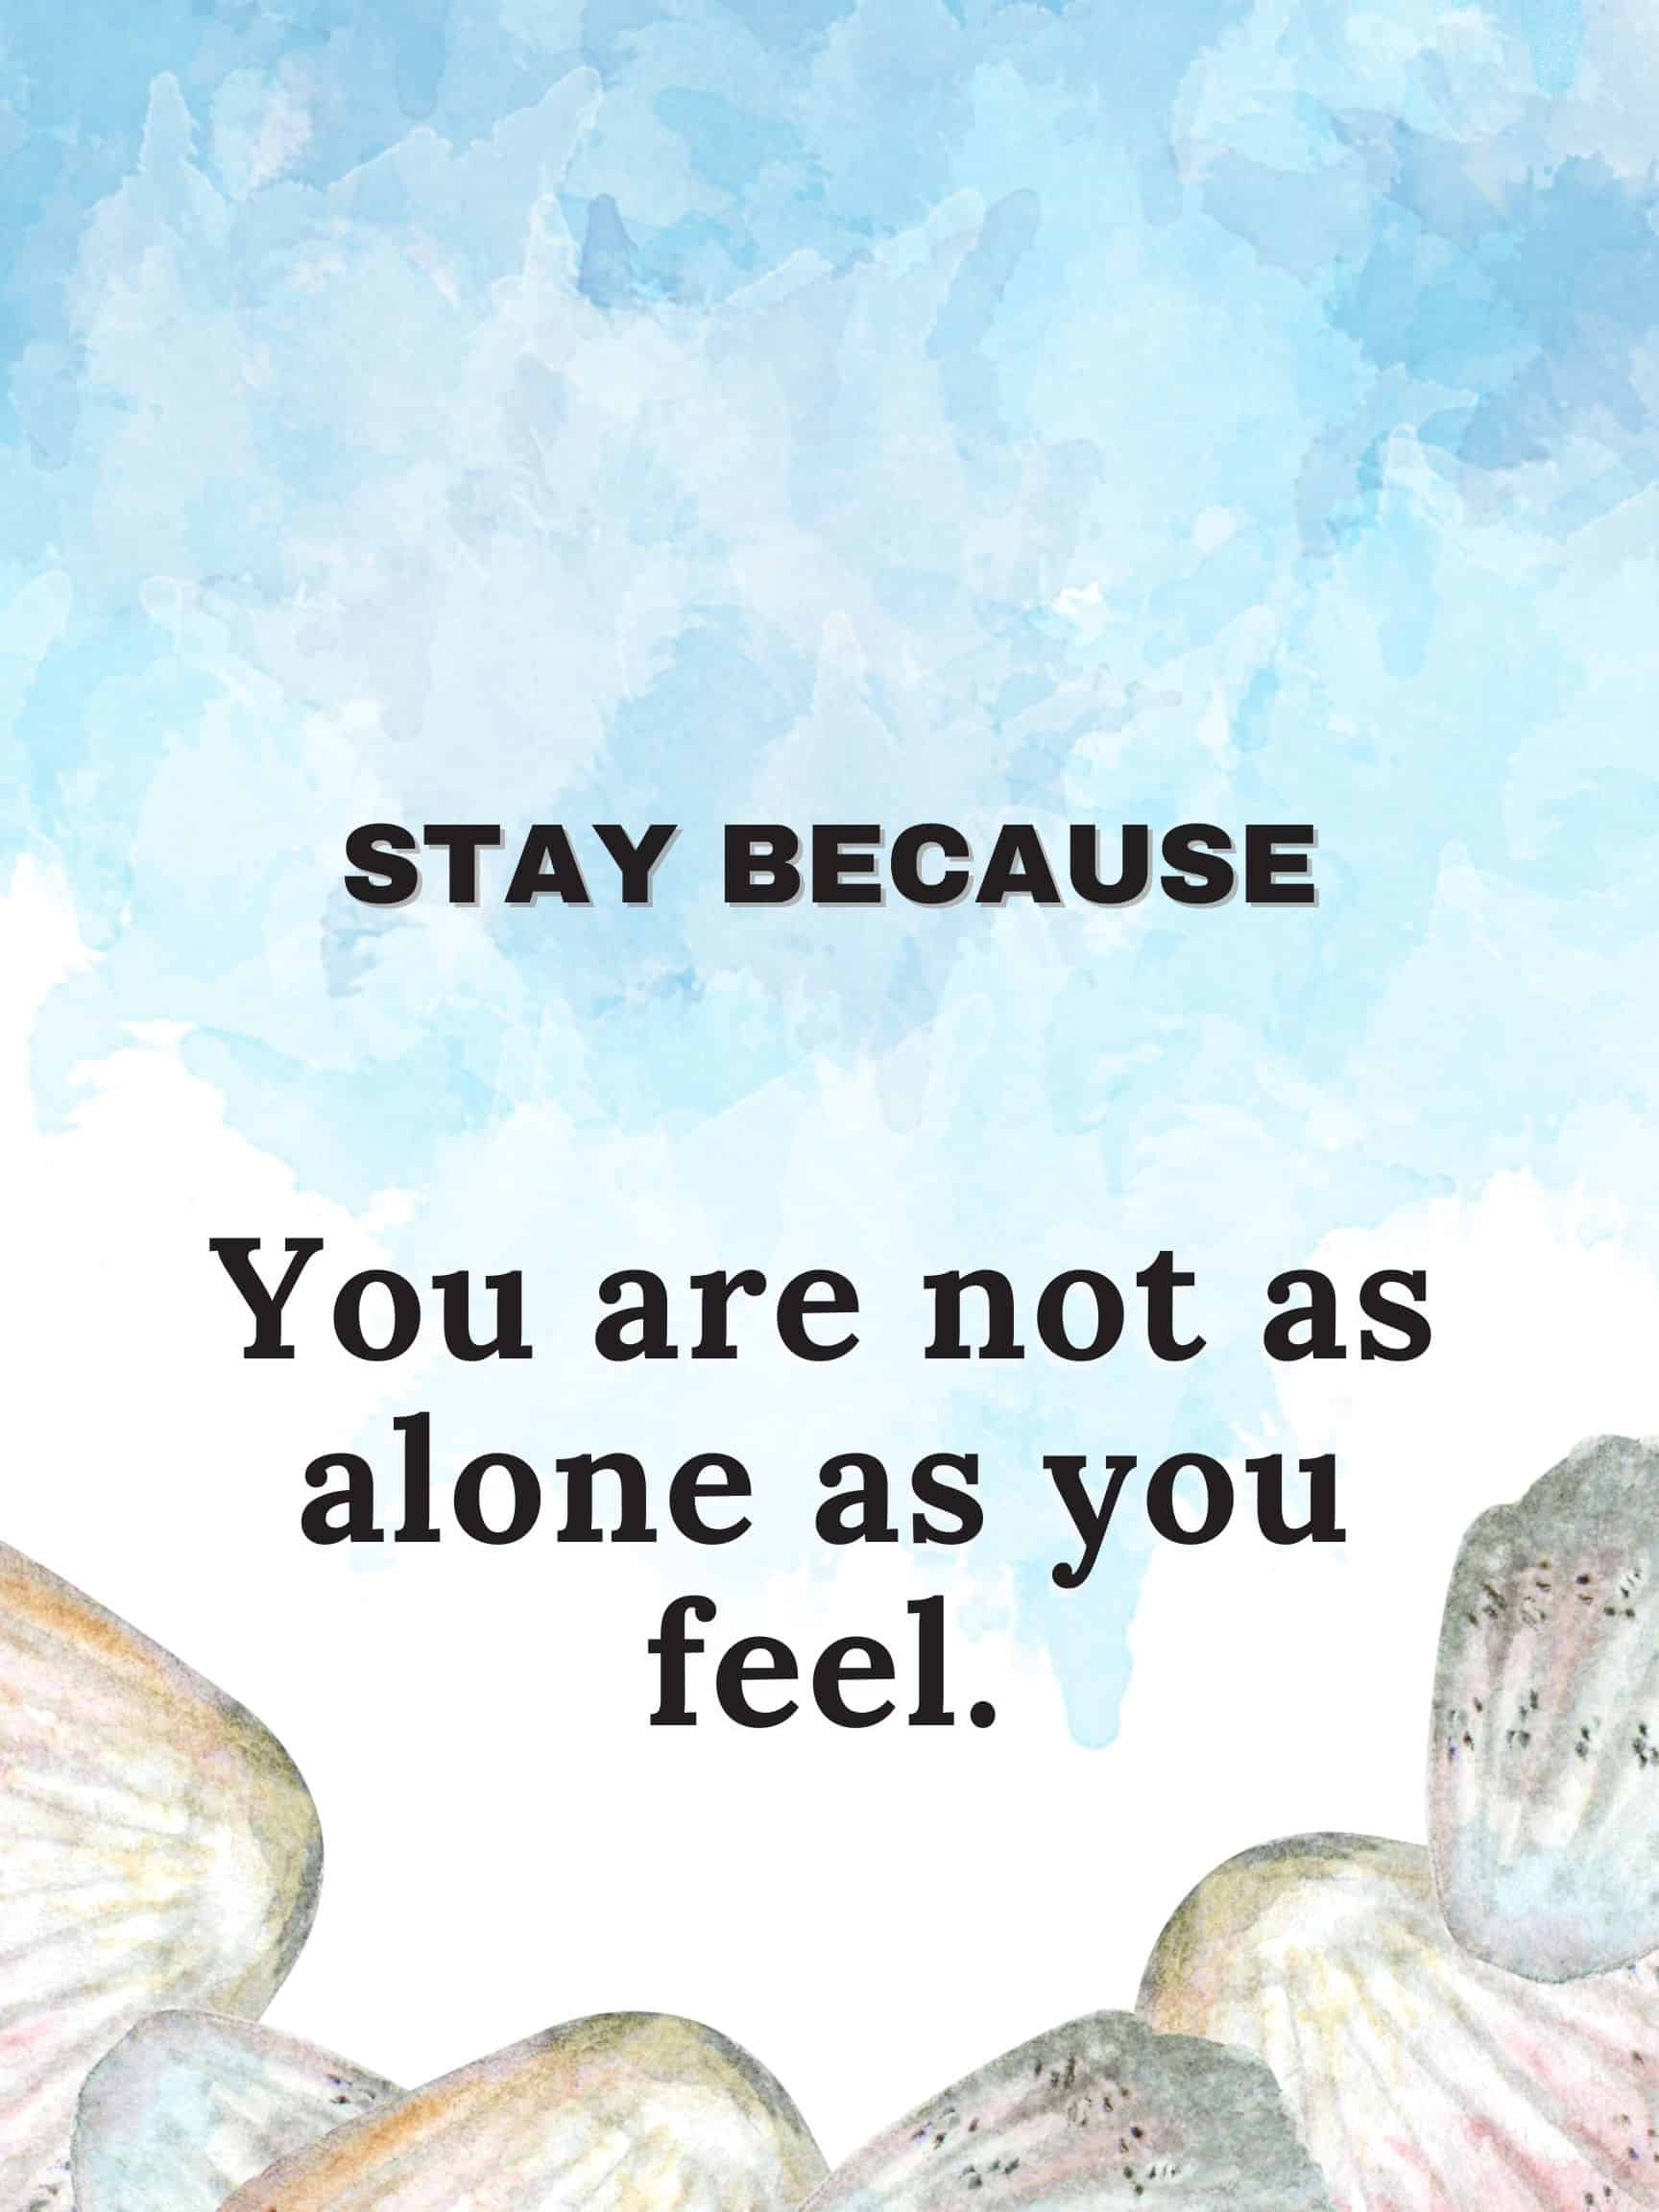 Stay because you are not as alone as you feel #stayBecause